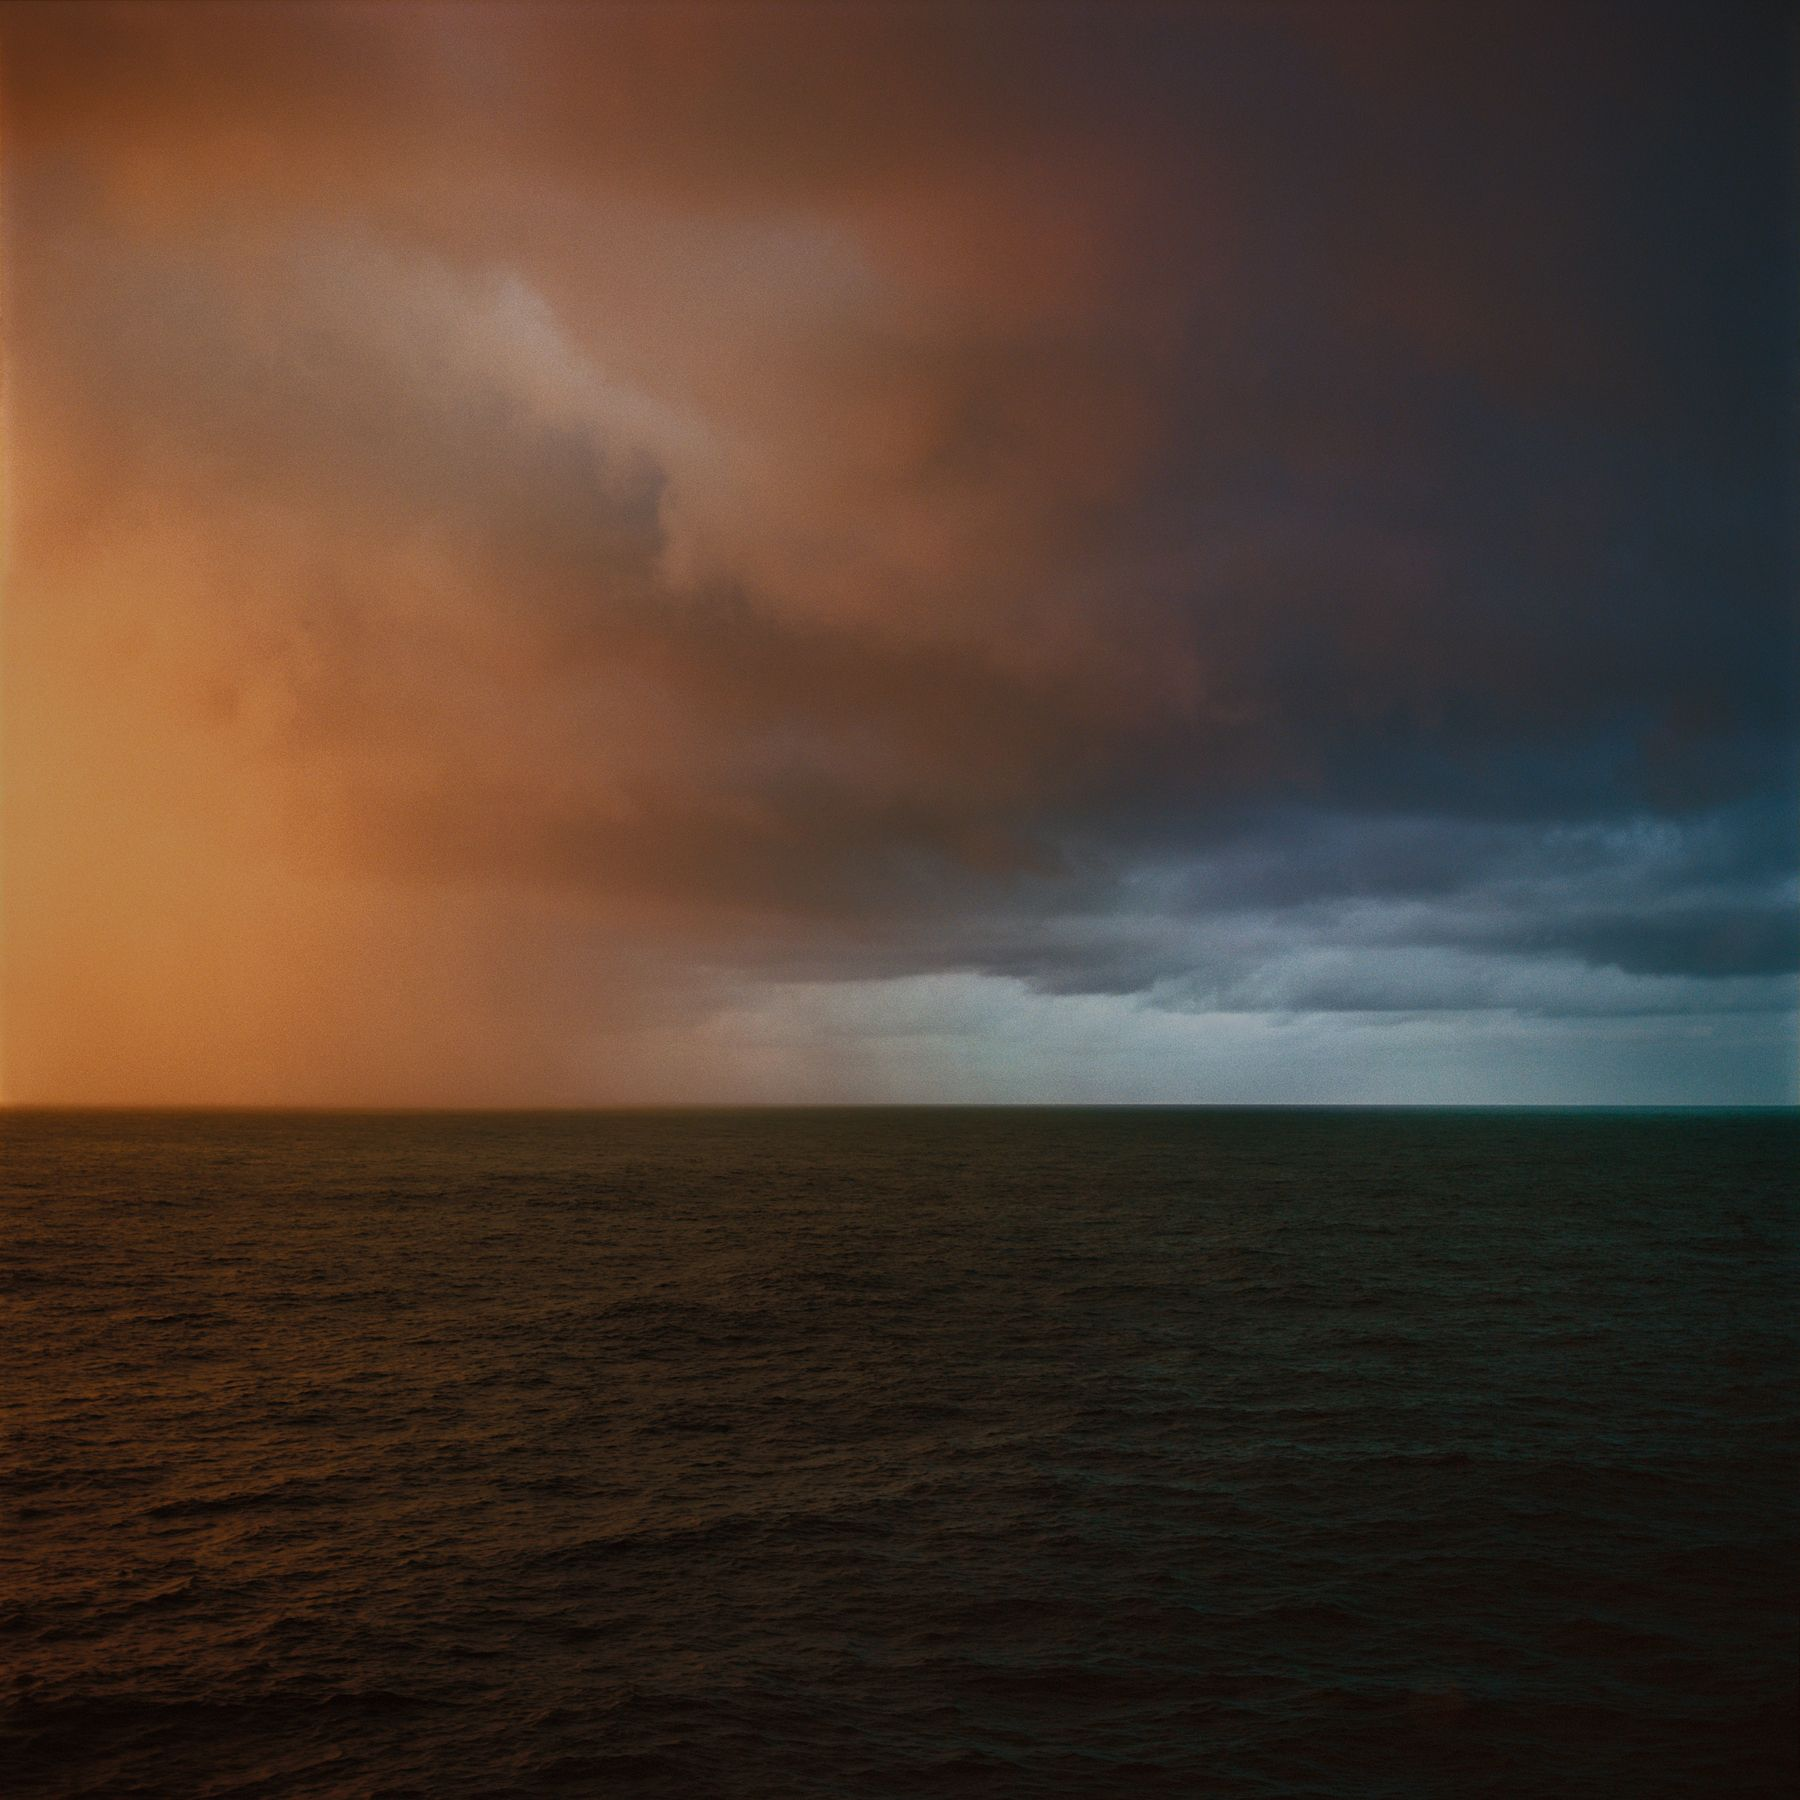 Pacific Sunrise, Archival Pigment Print